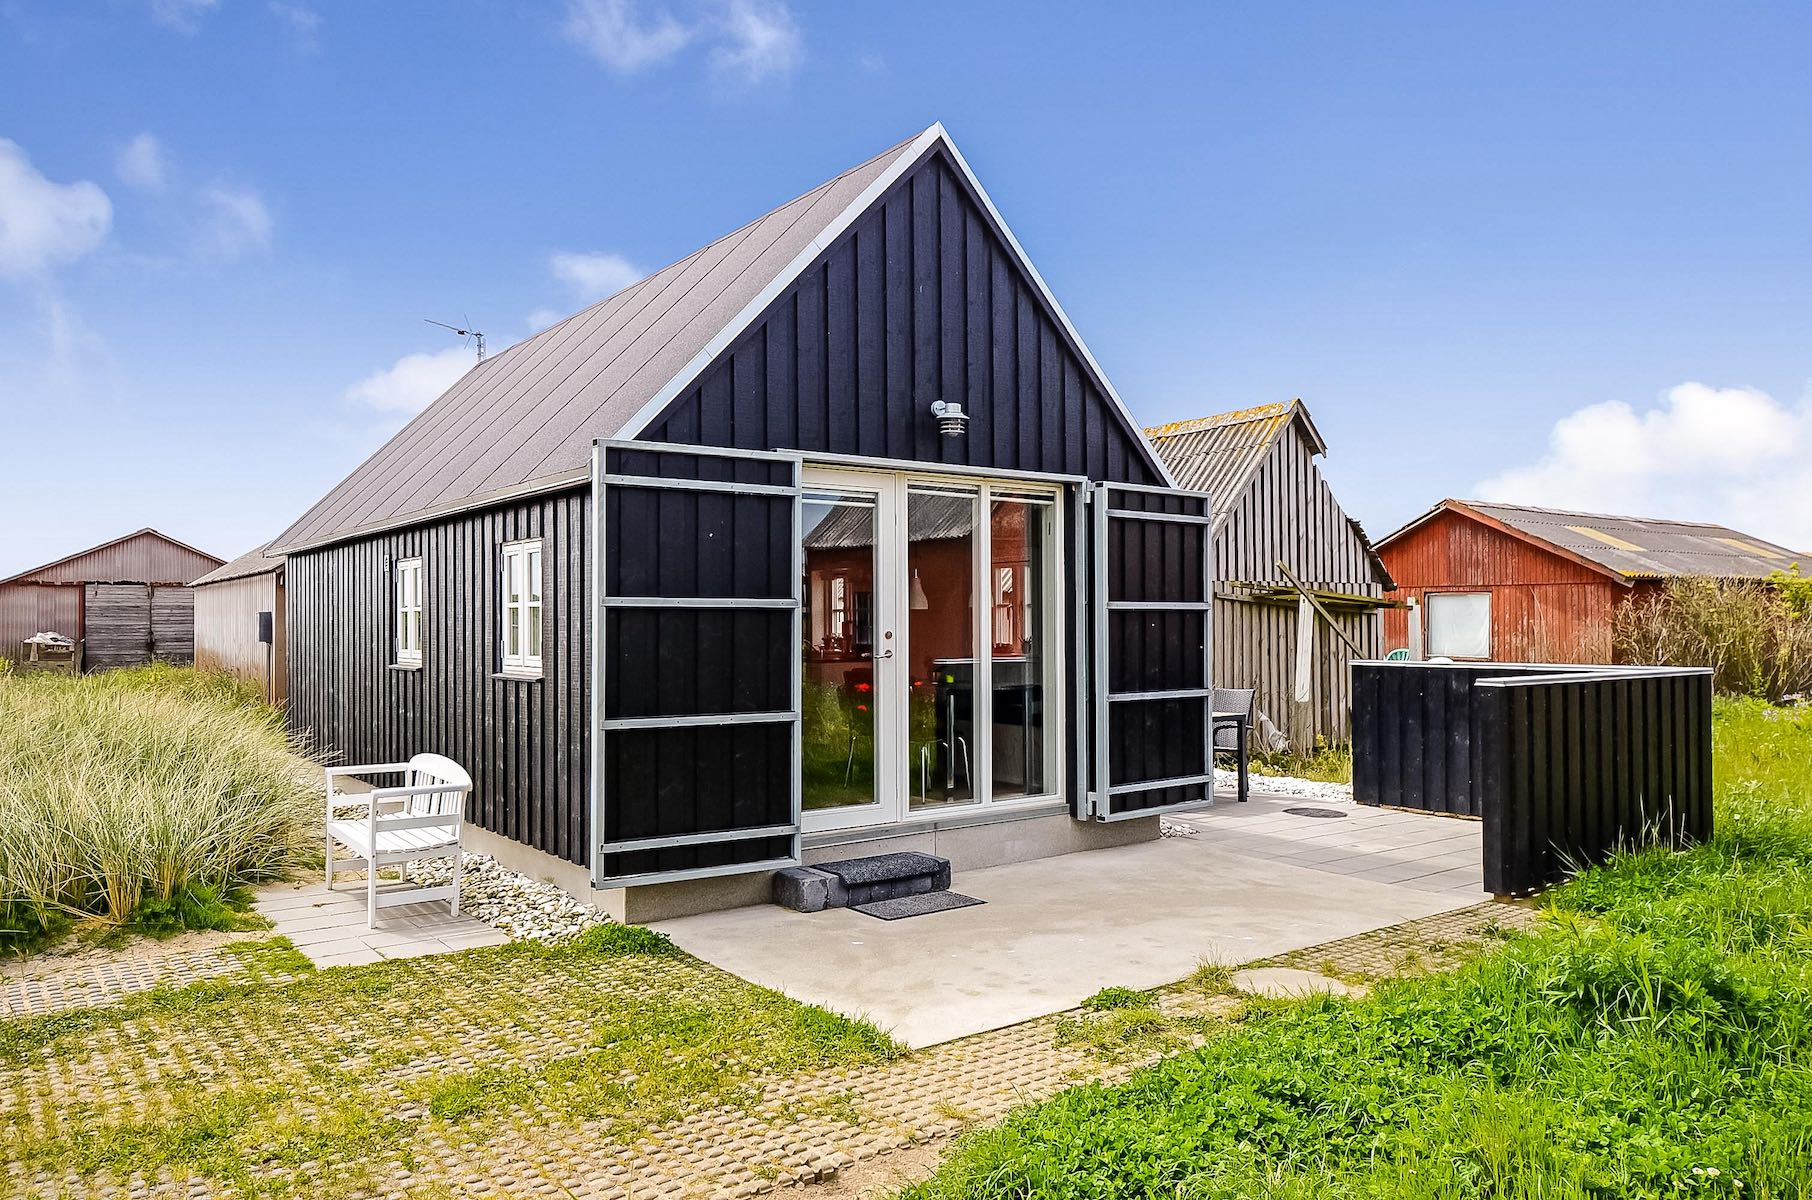 This Danish Summerhouse Was Inspired By The Neighboring Fishermenu0027s Sheds.  It Has One Bedroom On